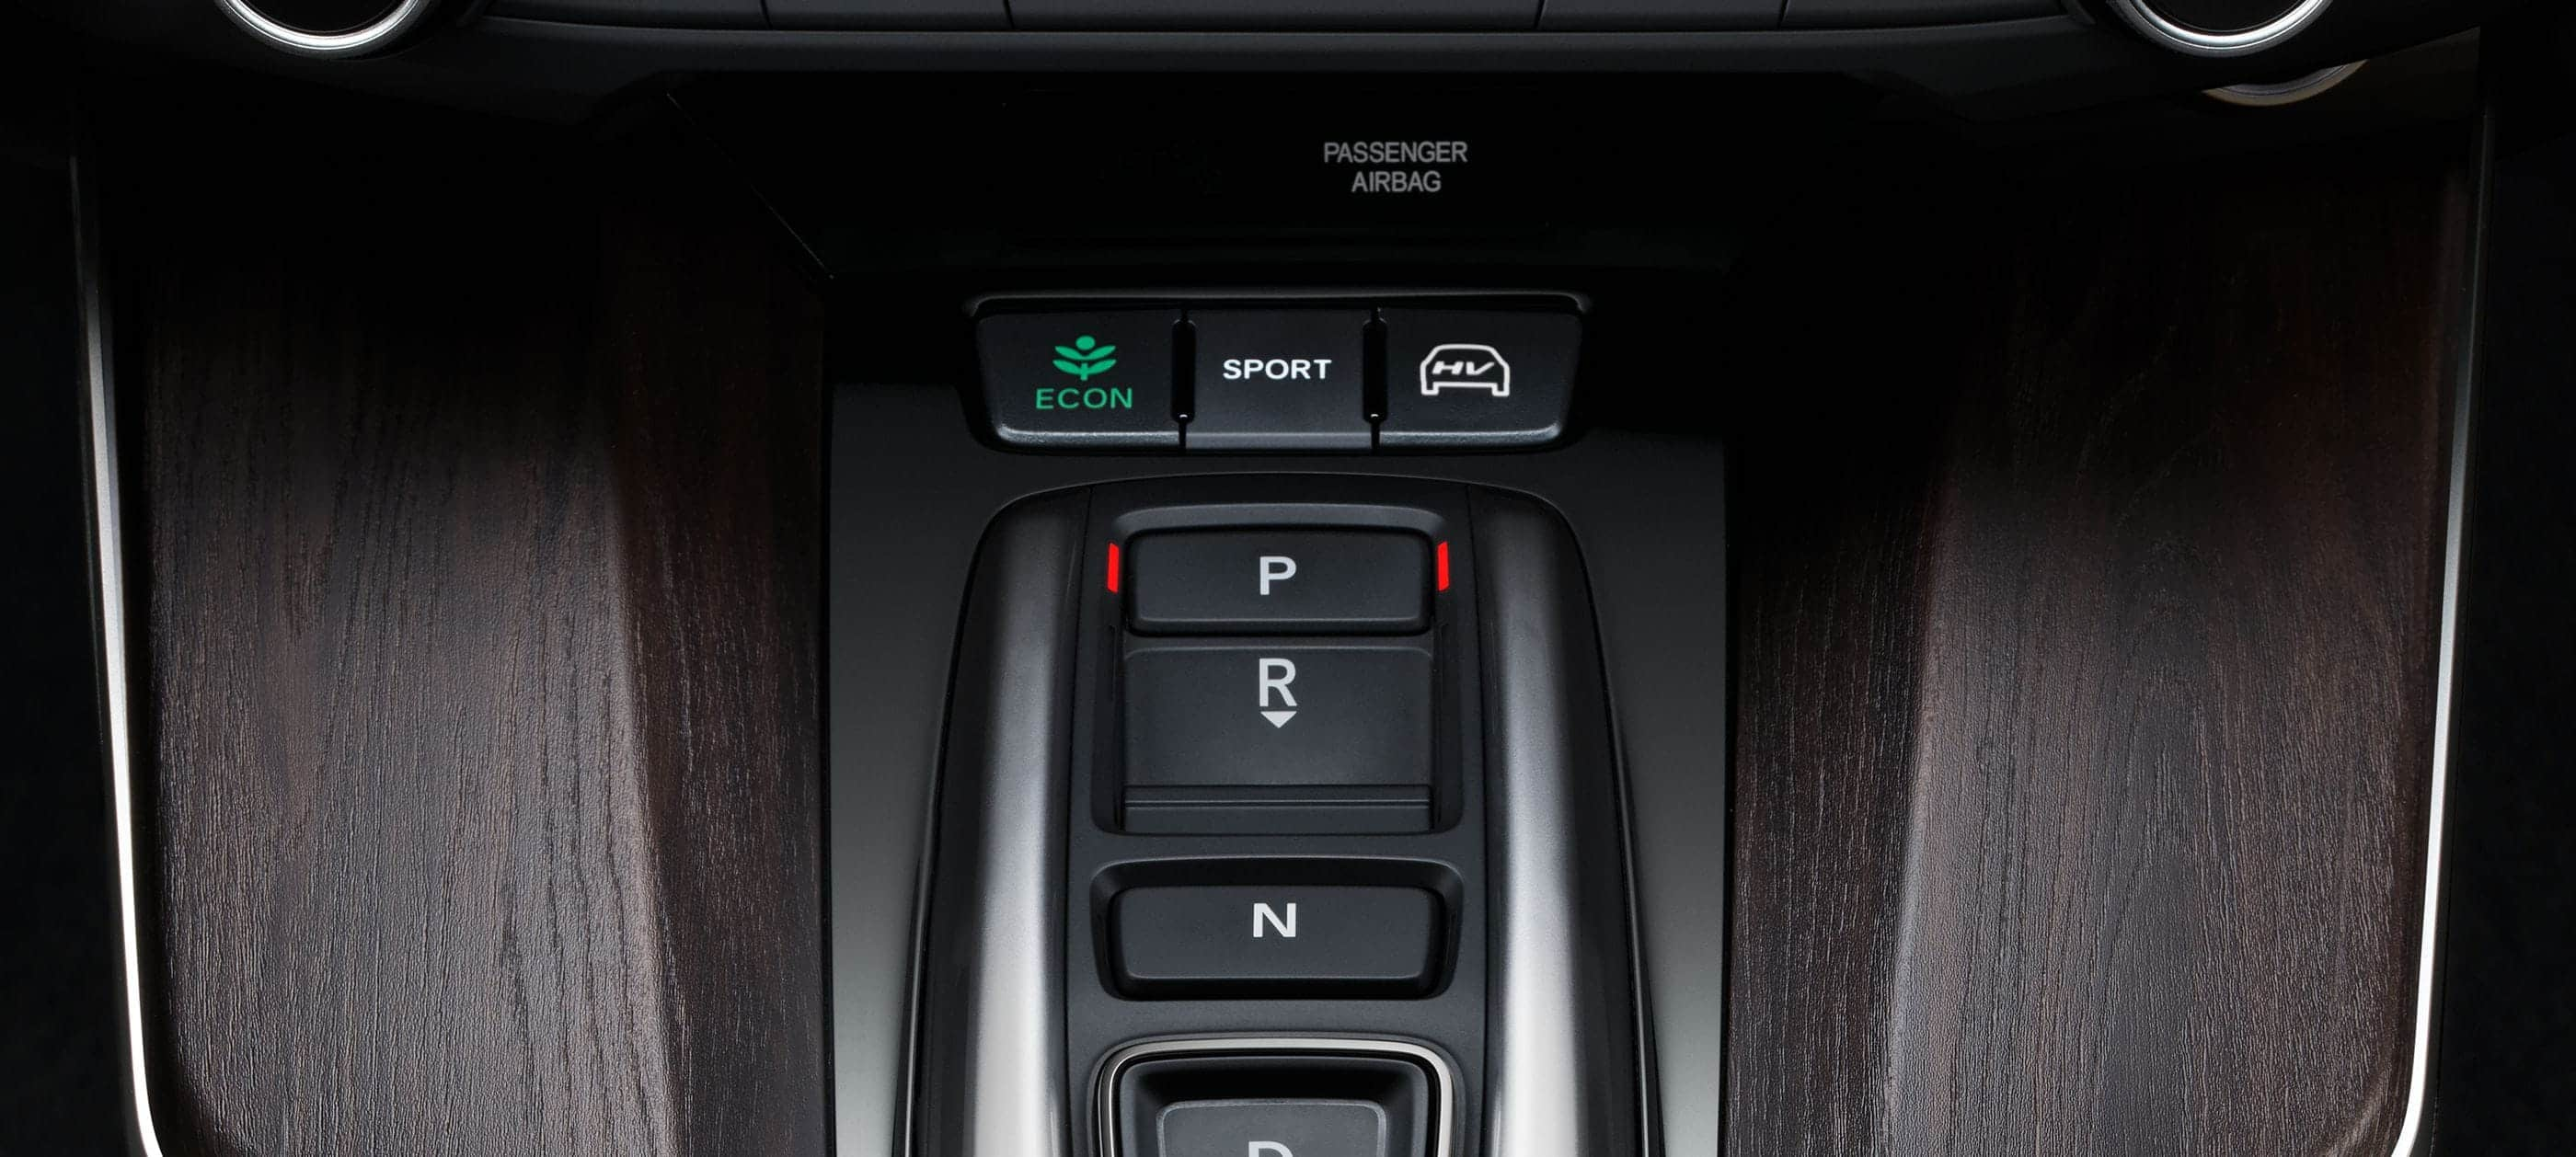 Detail of electronic gear selector in 2019 Clarity Plug-in Hybrid.